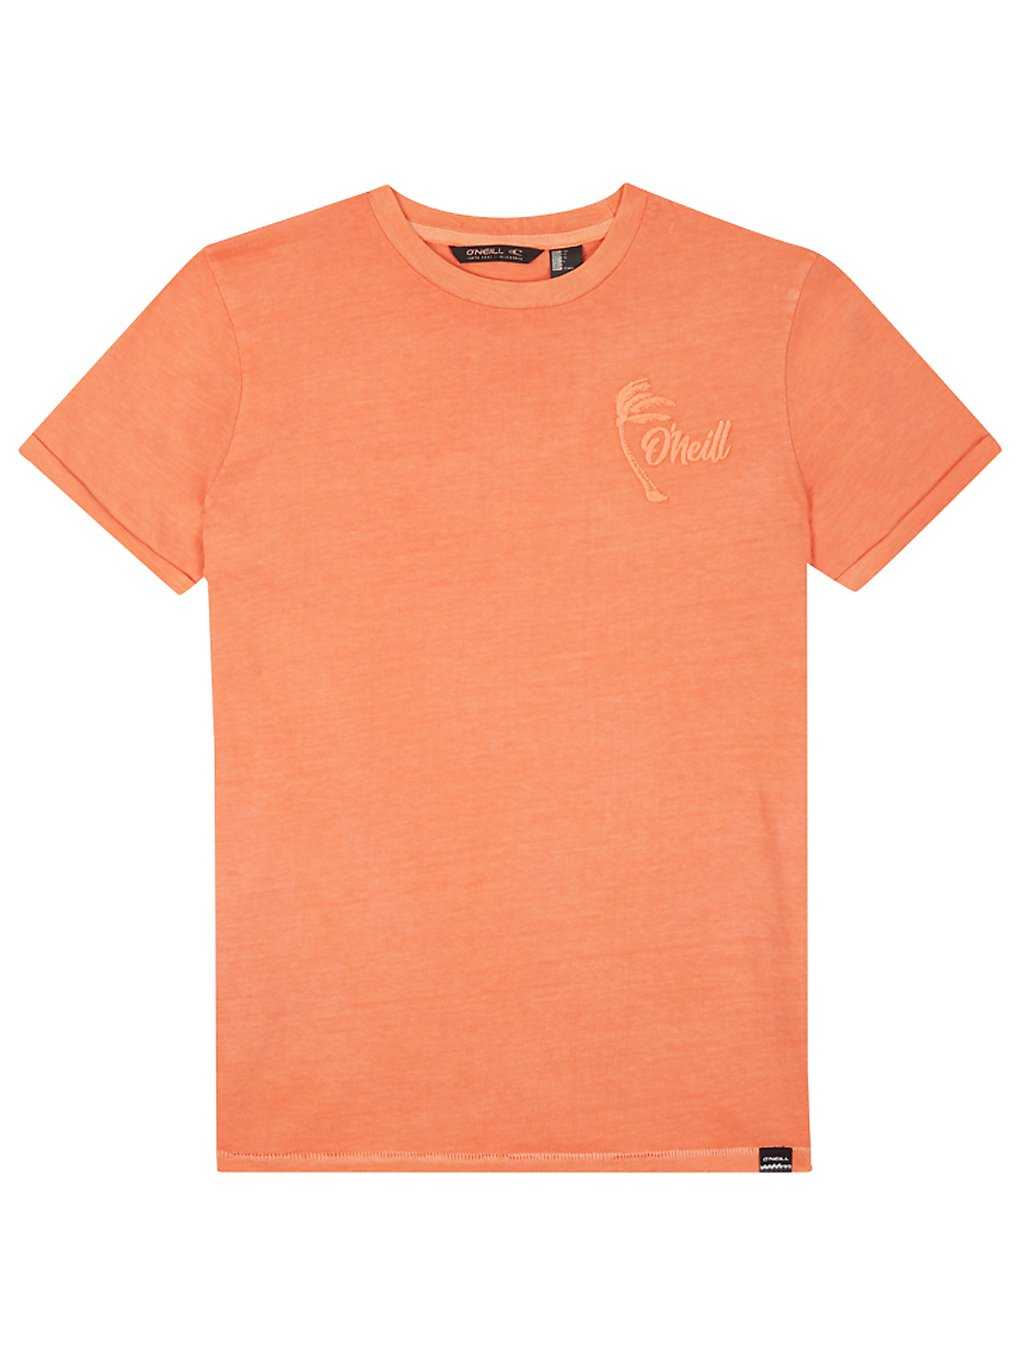 Image of O'Neill Carter Washed T-Shirt arancione